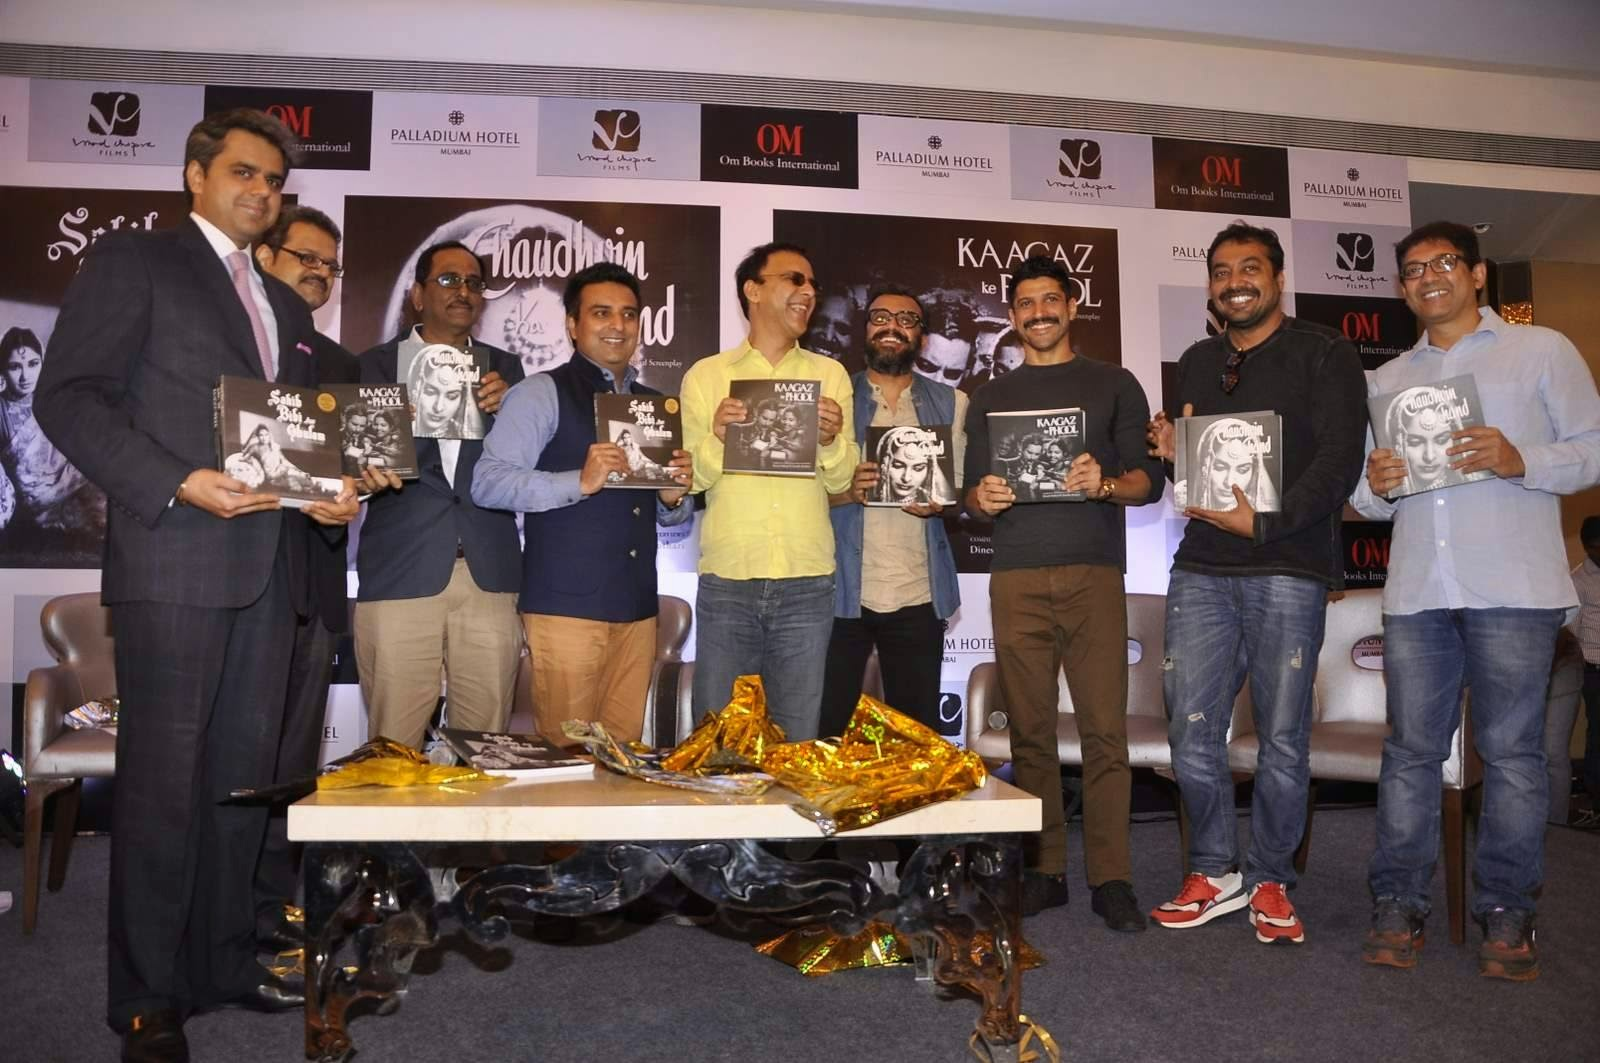 Farhan Akhtar & Vidhu Vinod Chopra at Guru Dutt's screenplay's book launch